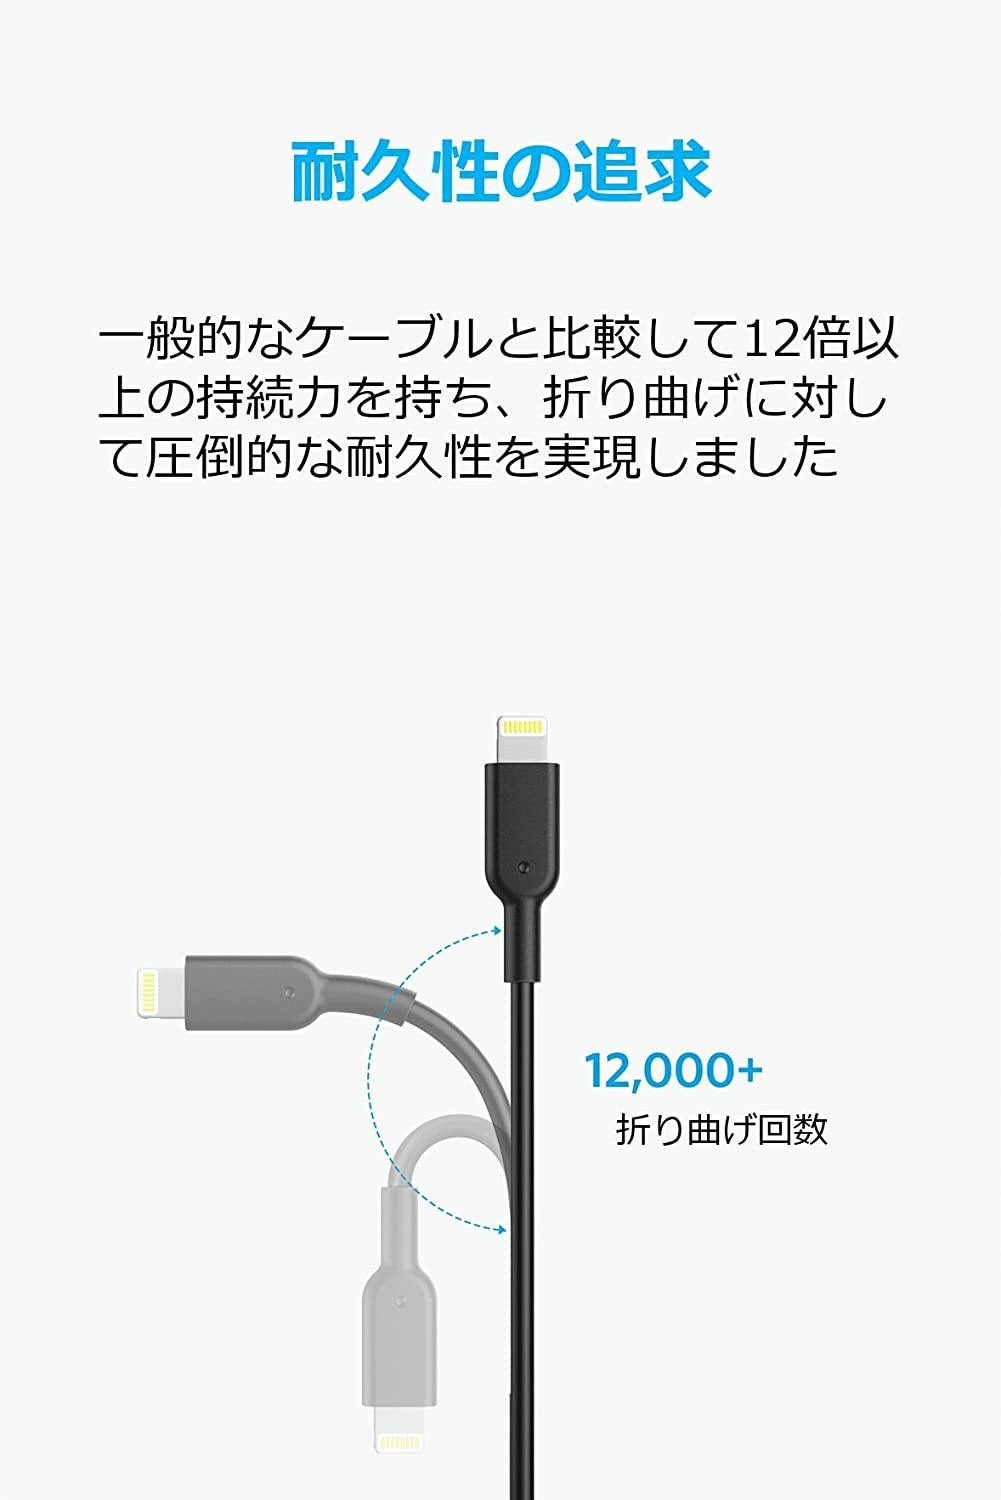 Anker Data Hub Ak A8431011 Usb Cable 1 Feet Electronics Powerline 3ft C To 30 White A8163021